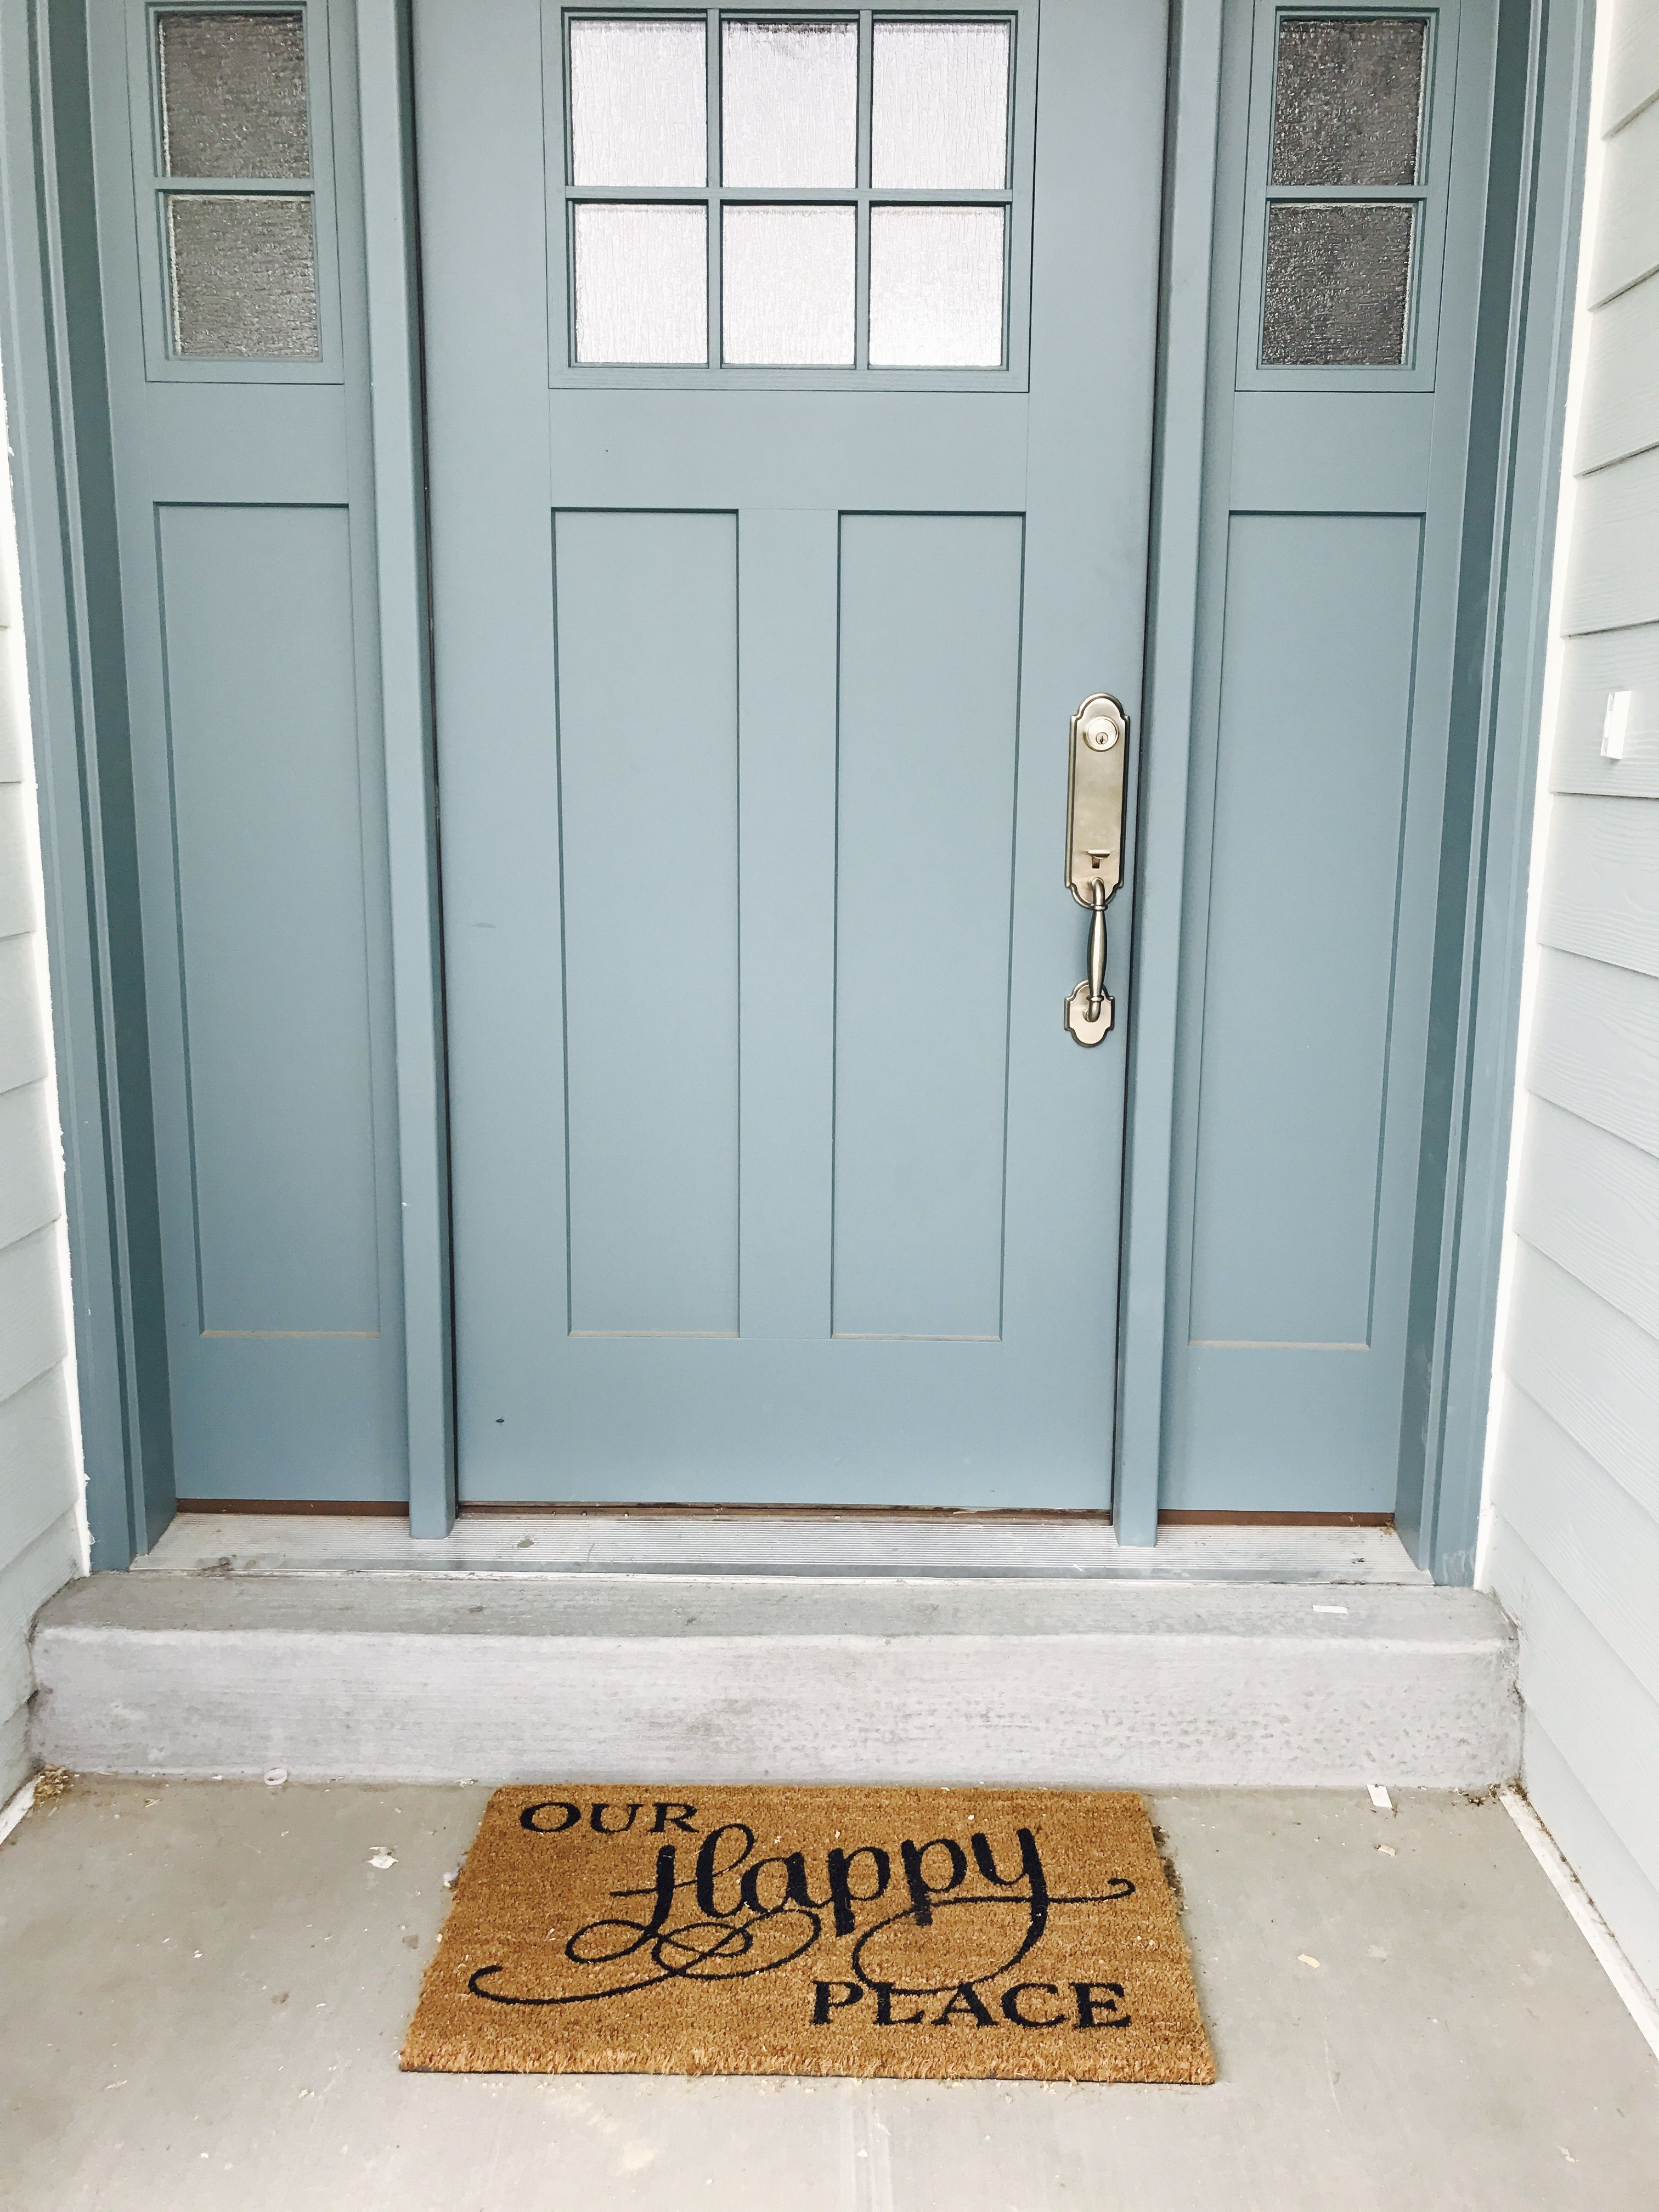 This Craftman Door Color Is Aegean Teal By Sherwin